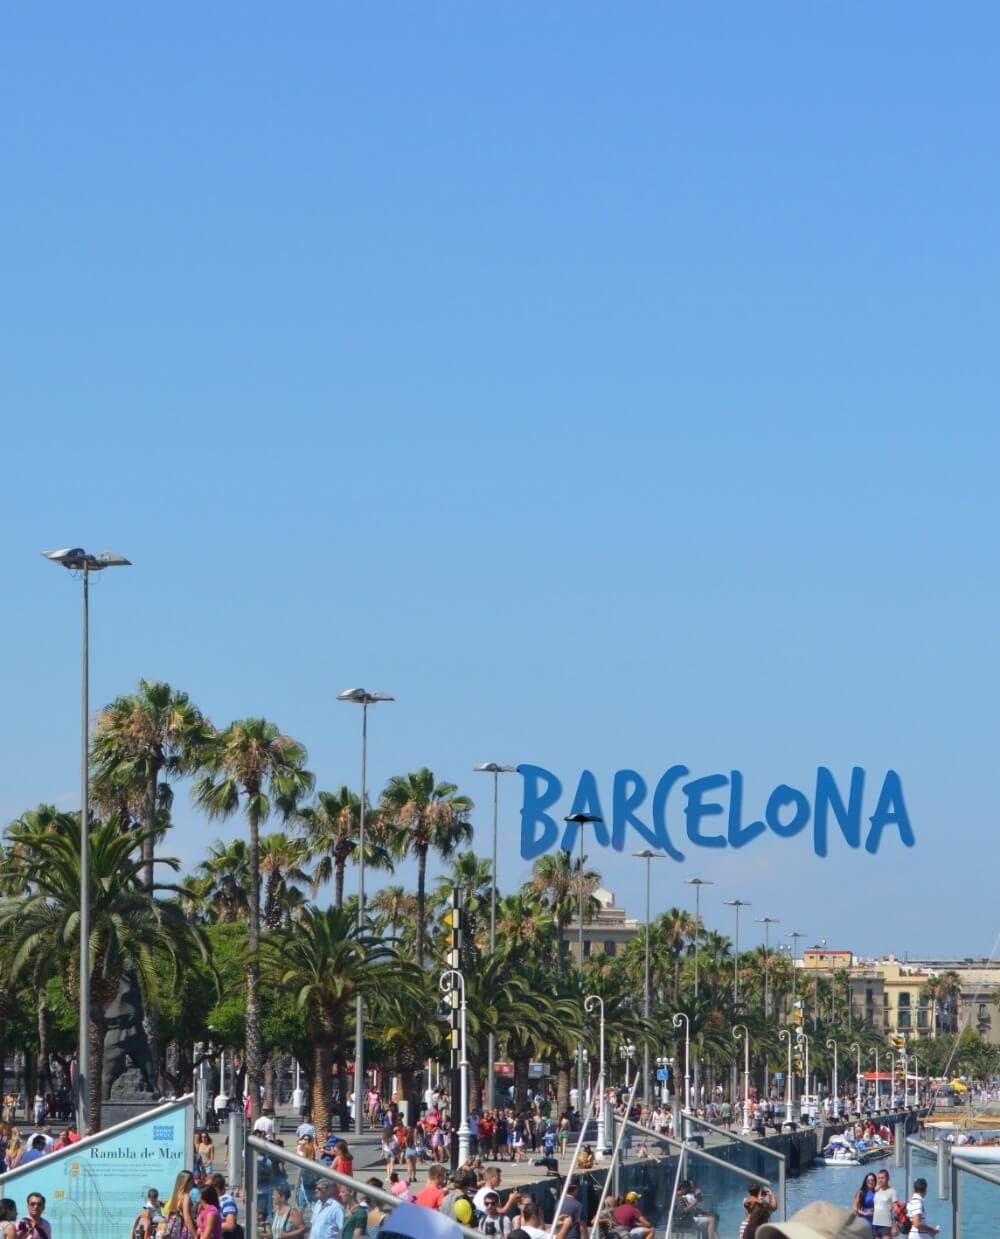 "Palm trees along waterfront in Barcelona - ""Barcelona"" text in sky"